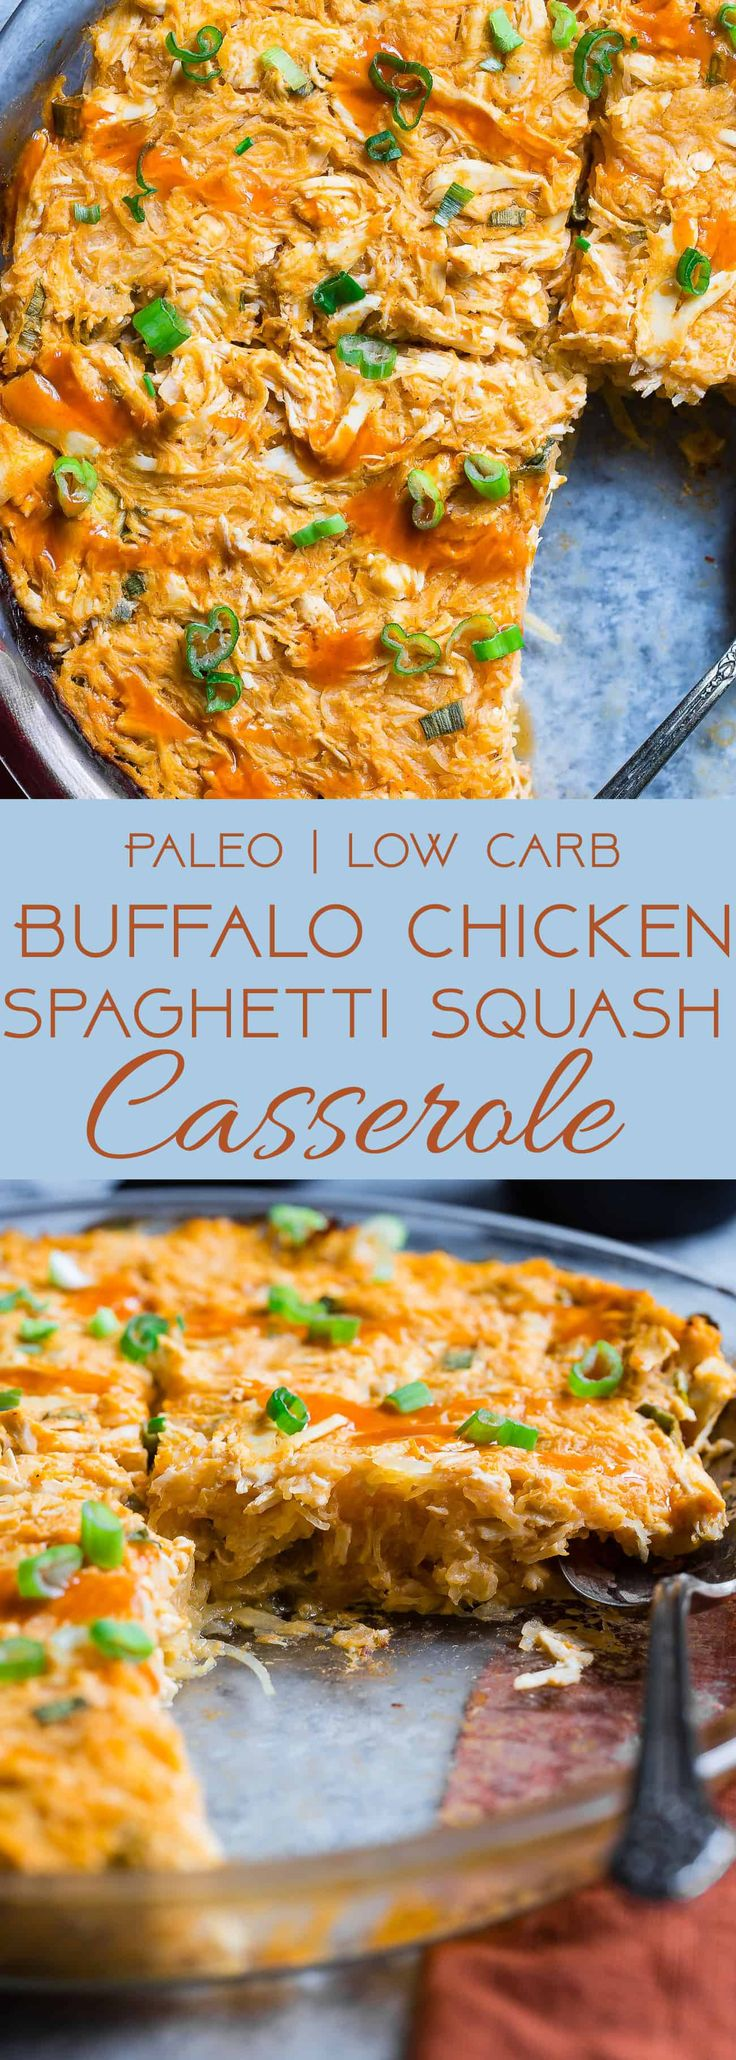 Paleo Buffalo Chicken Baked Spaghetti Squash Casserole -This EASY, keto and whole30 casserole is only 7 ingredients, 320 calories and packed with protein! It's a family friendly, low carb, weeknight dinner that even picky eaters will love!   #Foodfaithfitness   #Keto #paleo #glutenfree #whole30 #kidfriendly